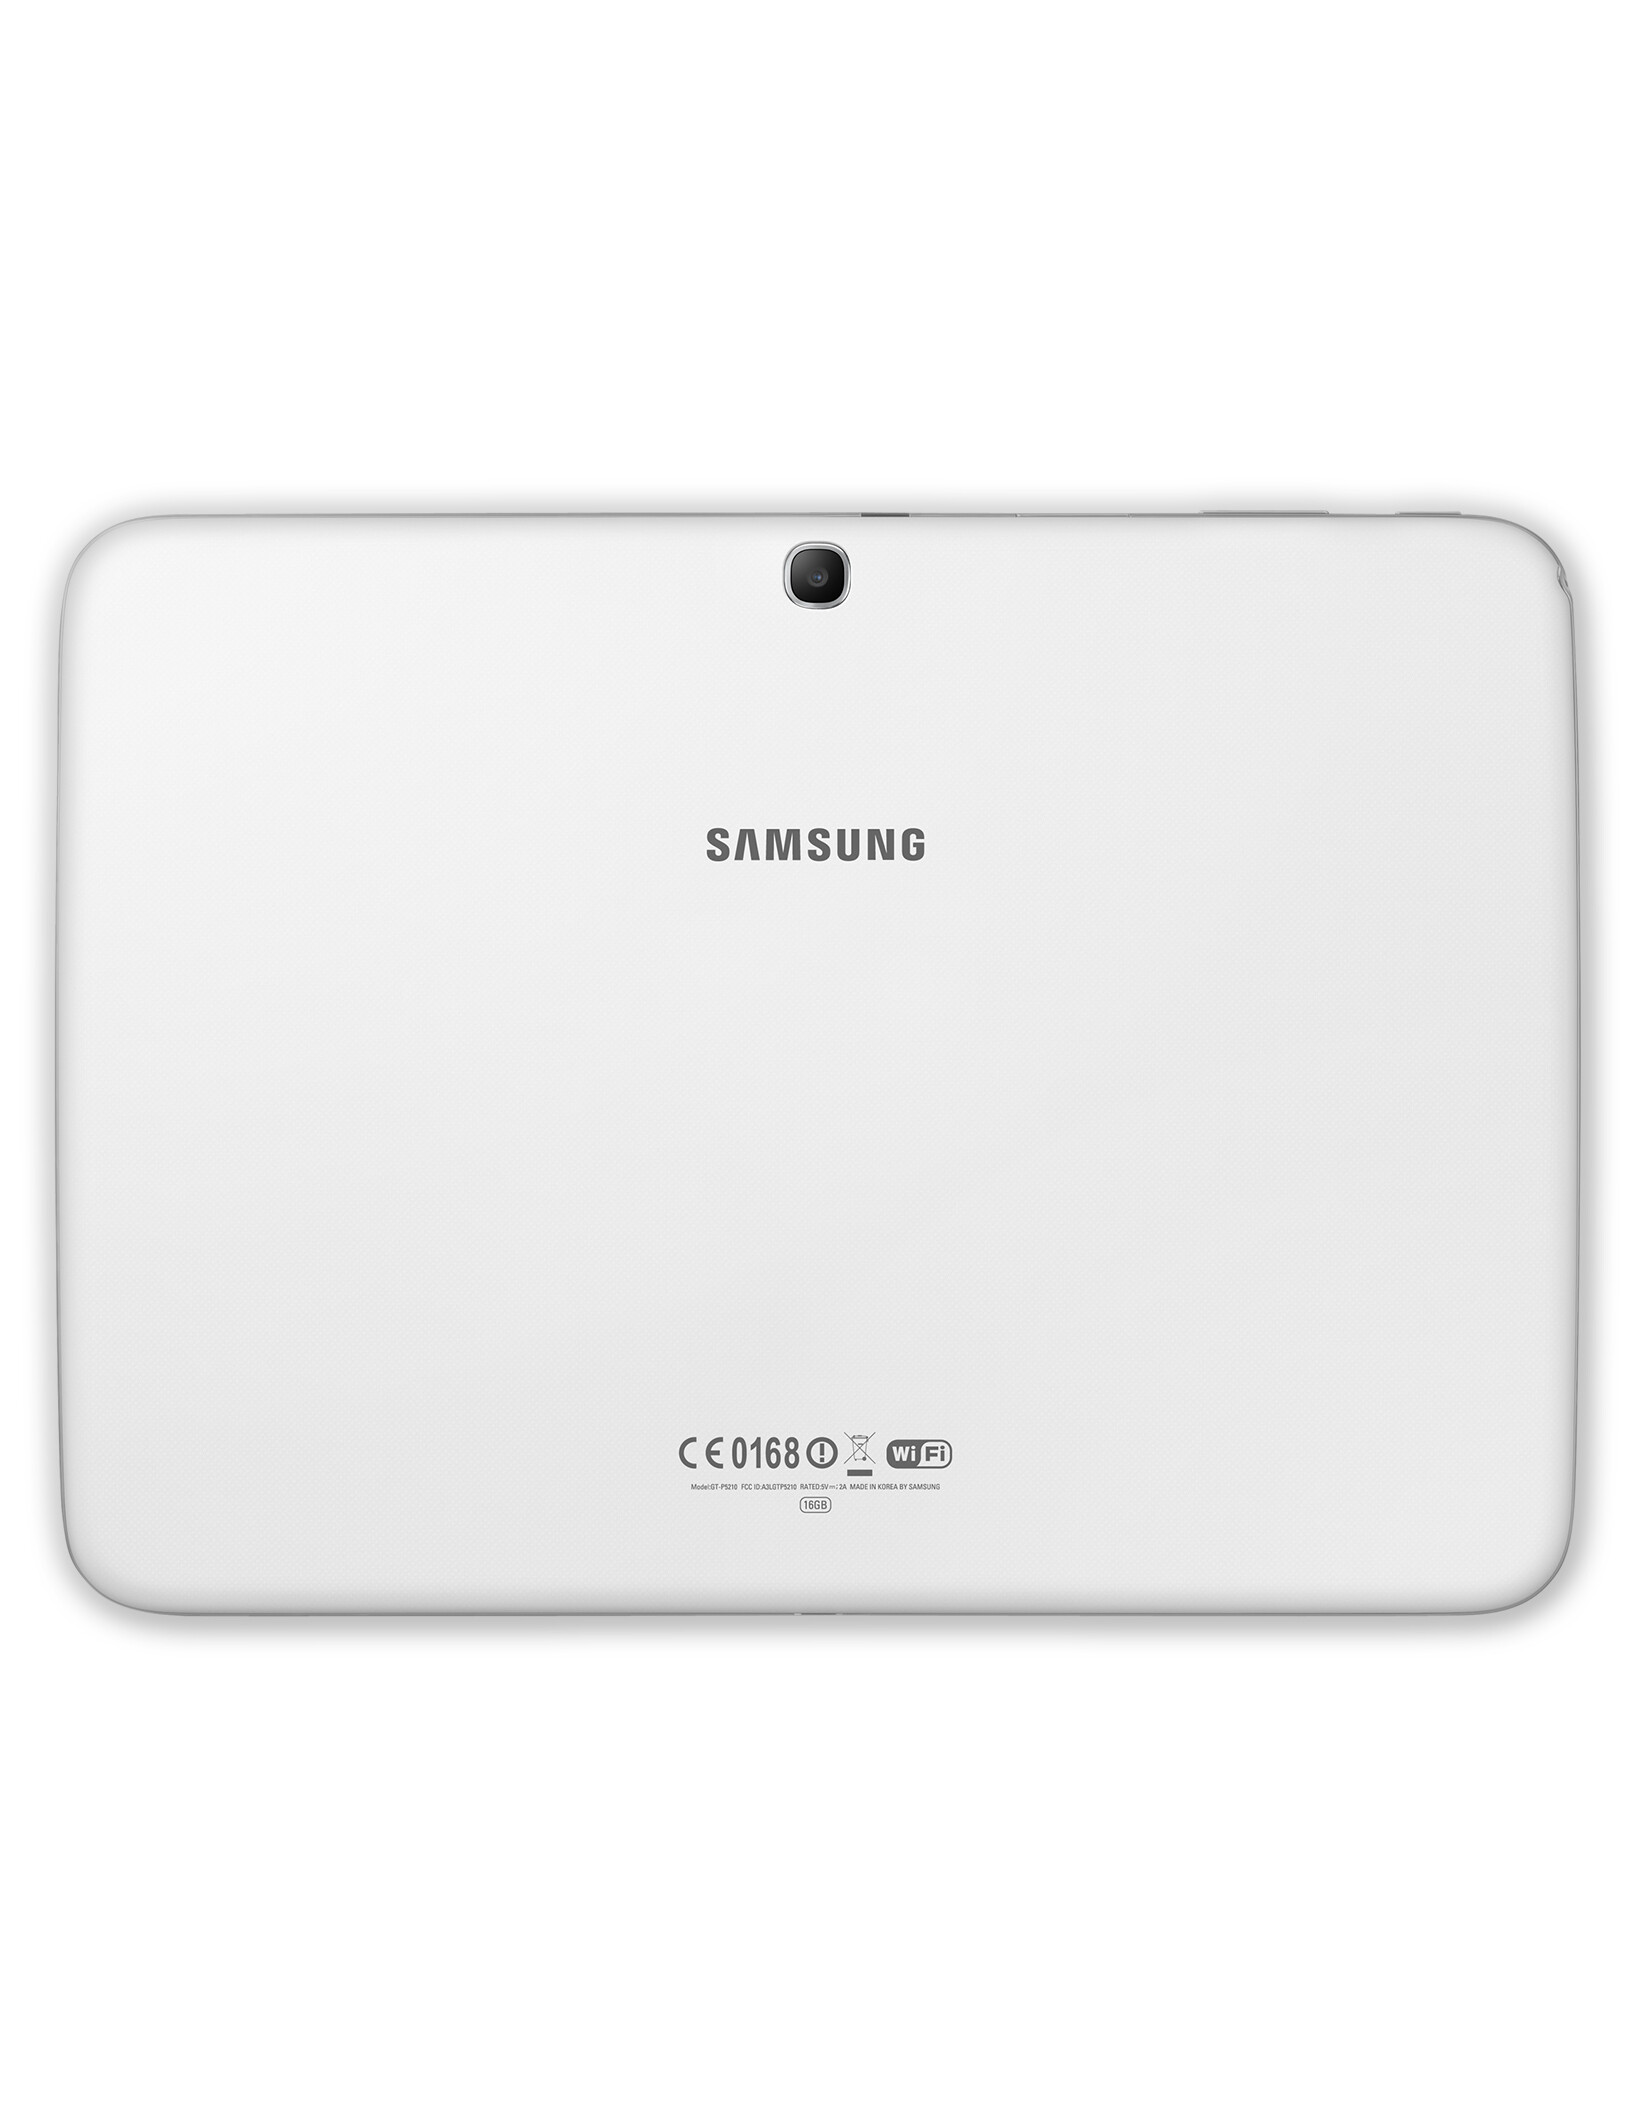 samsung galaxy tab a 10.1 manual